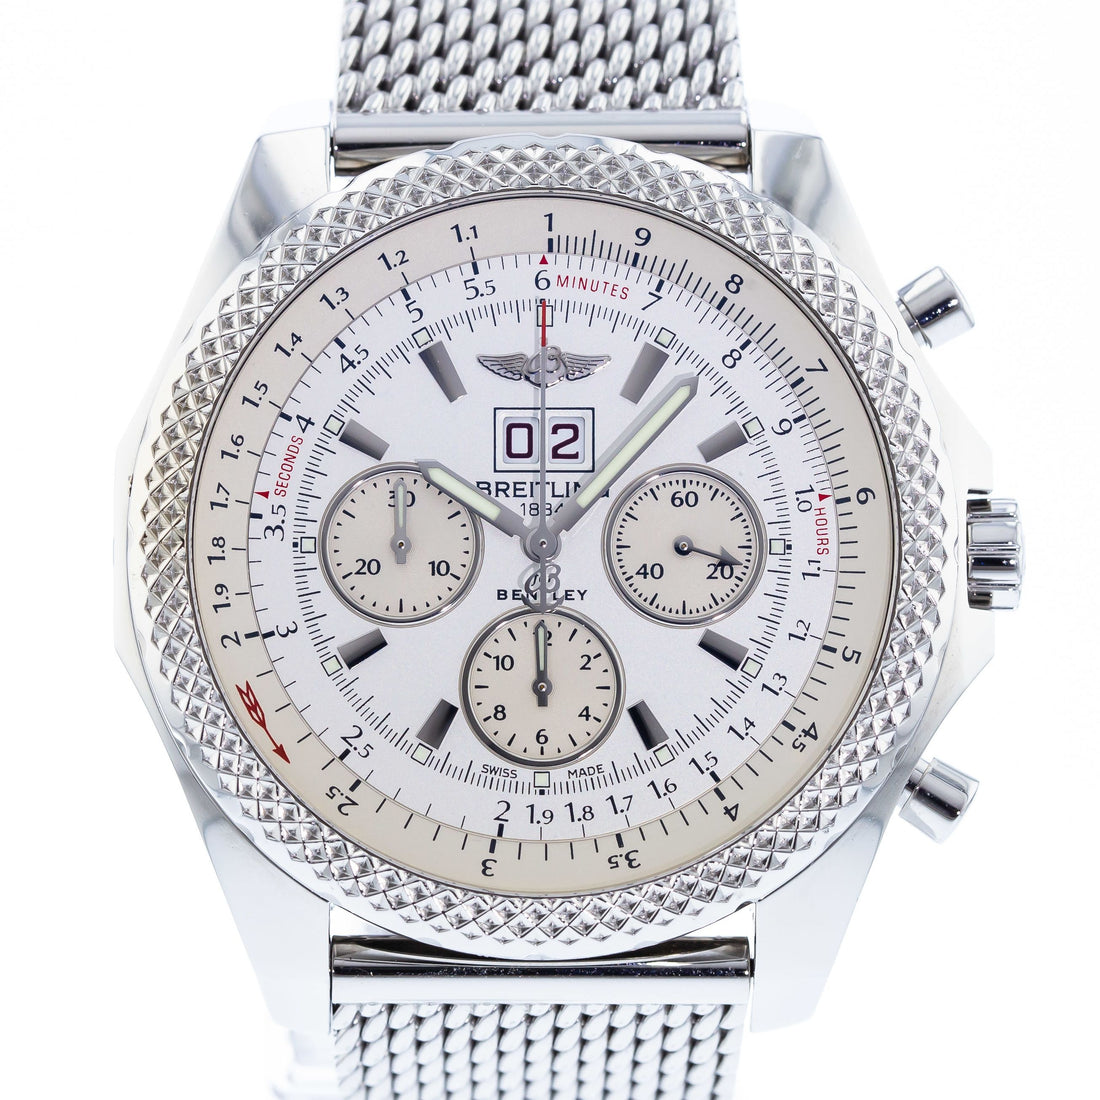 Authentic Used Breitling Bentley 6 75 Speed A44364 Watch 10 10 Brt Vbstx3